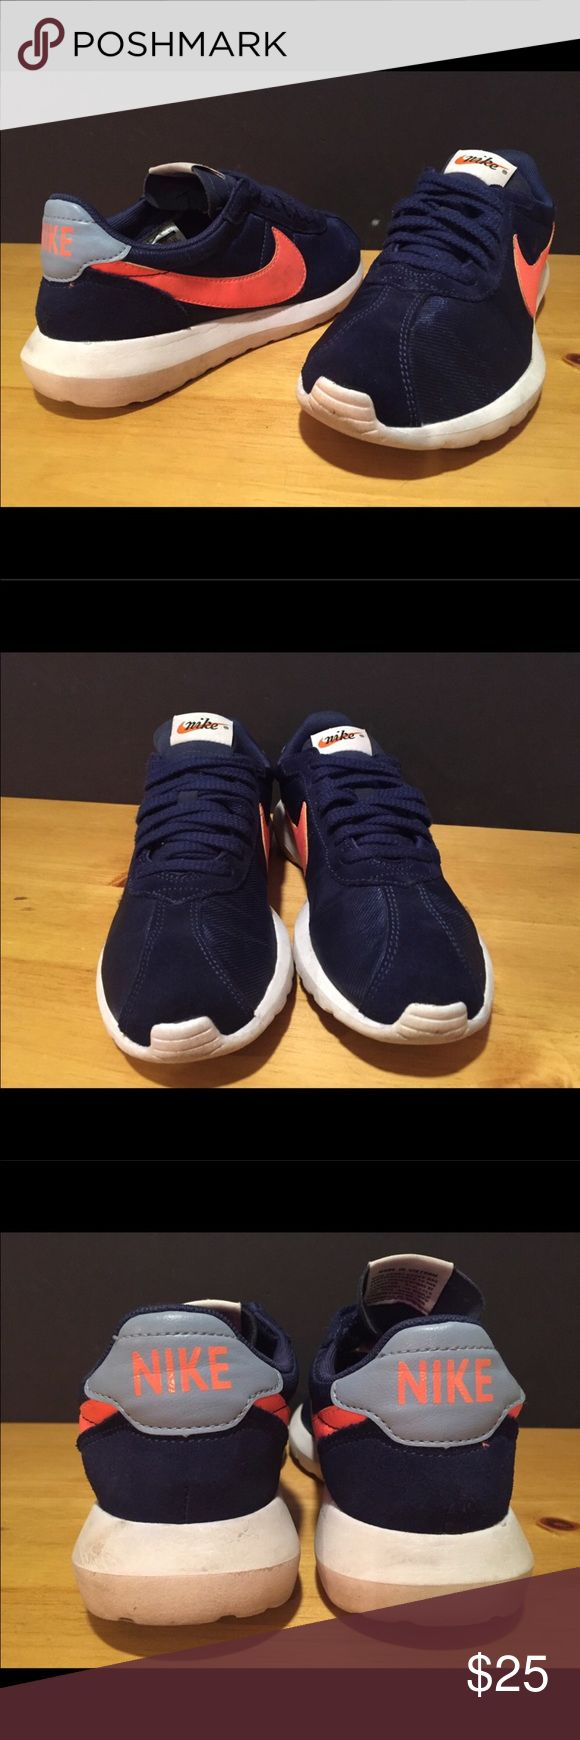 Nike Id Cortez Women's Shoes Size 8 Nike Id Cortez Women's Shoes Size 8 - pre owned , very good condition ! Nike Shoes Athletic Shoes